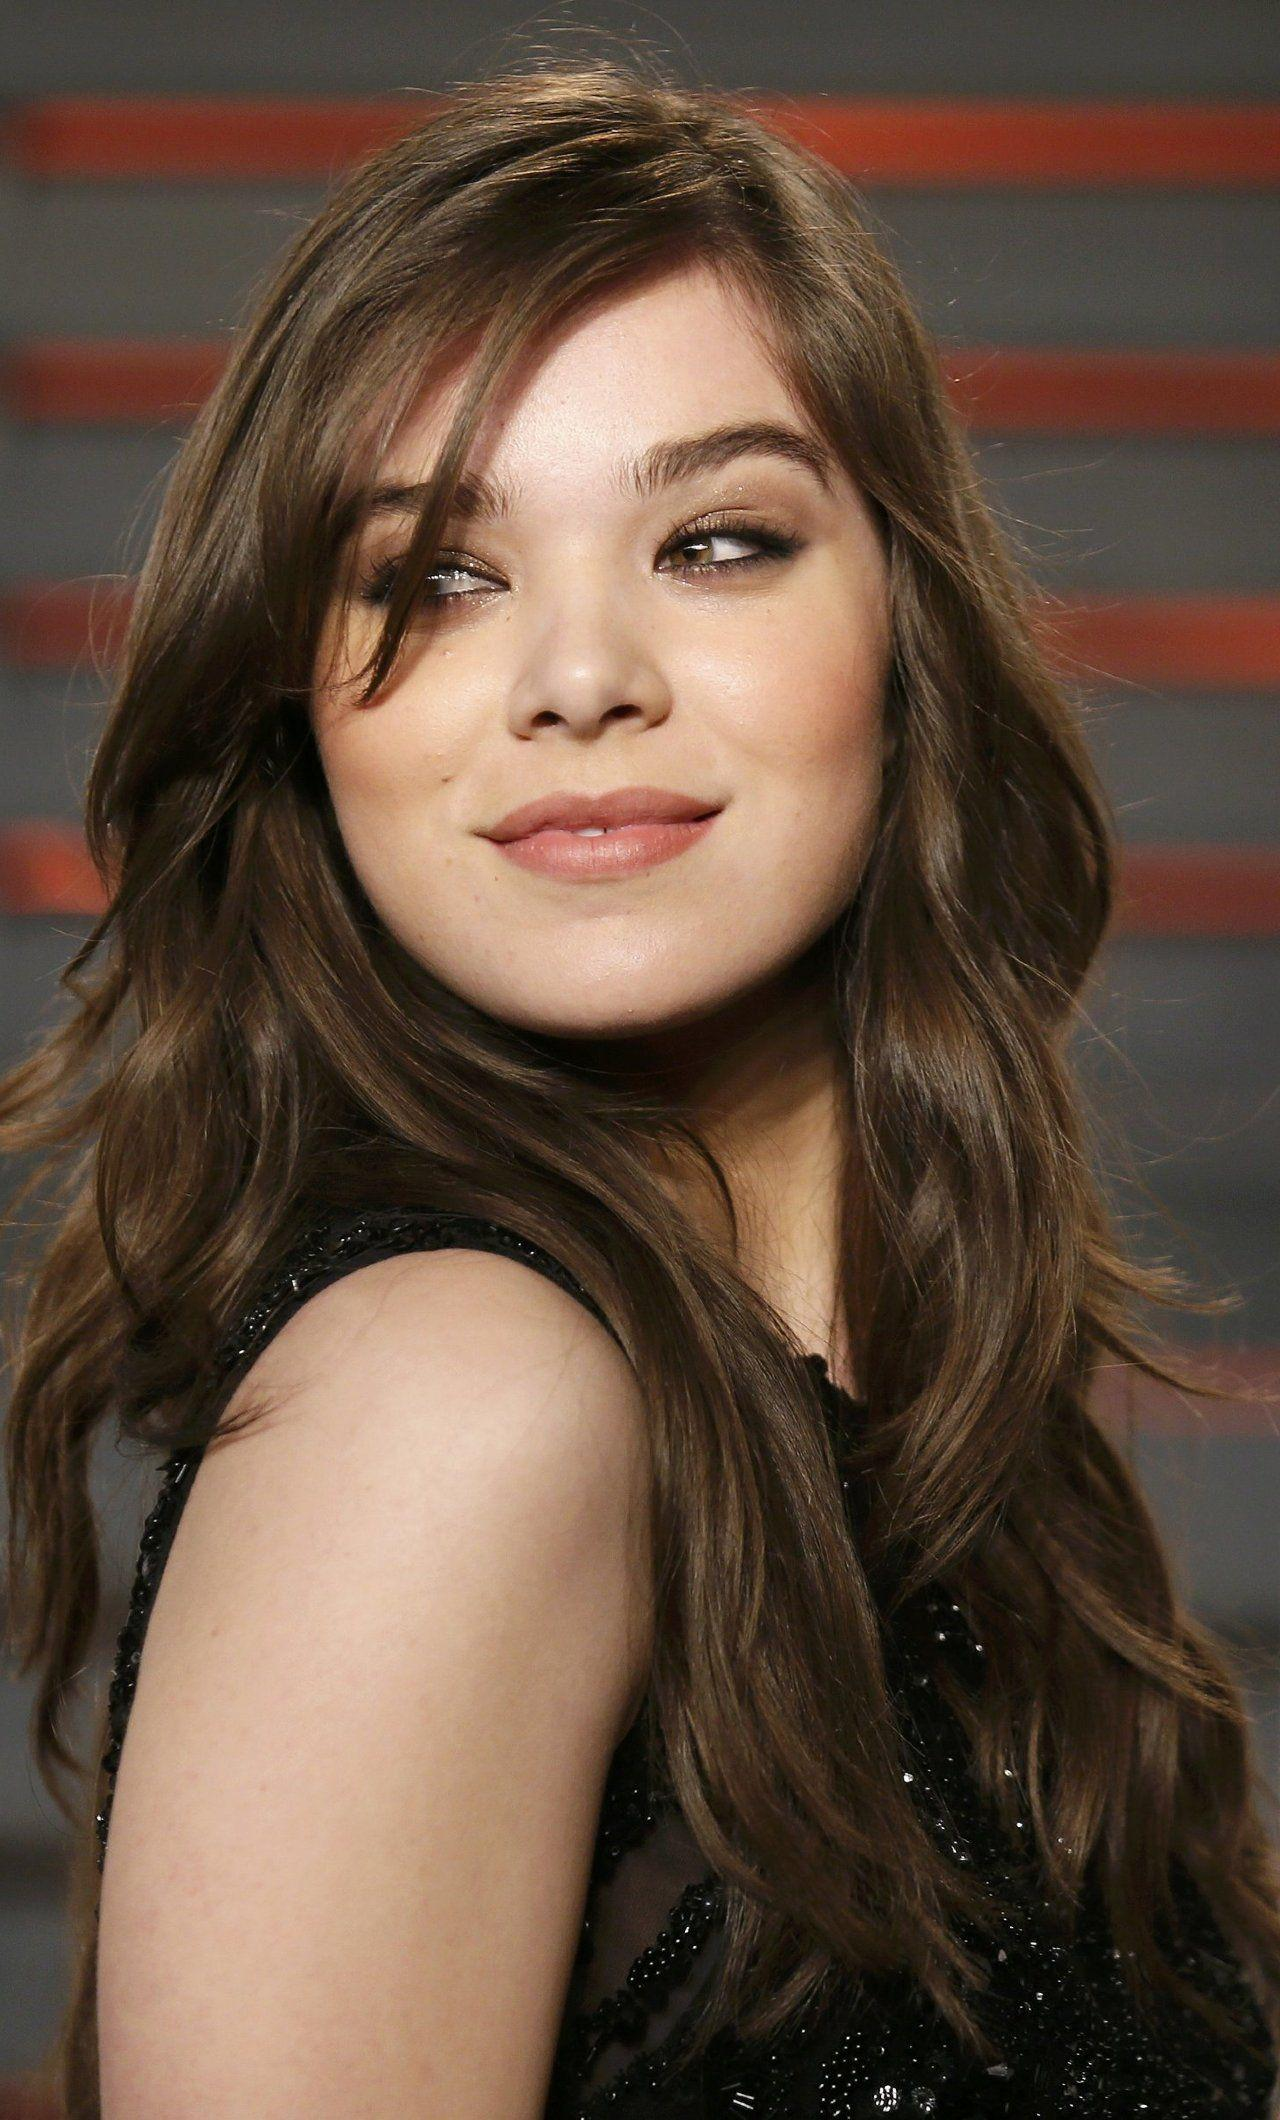 Hailee Steinfeld 2018 Wallpapers Wallpaper Cave